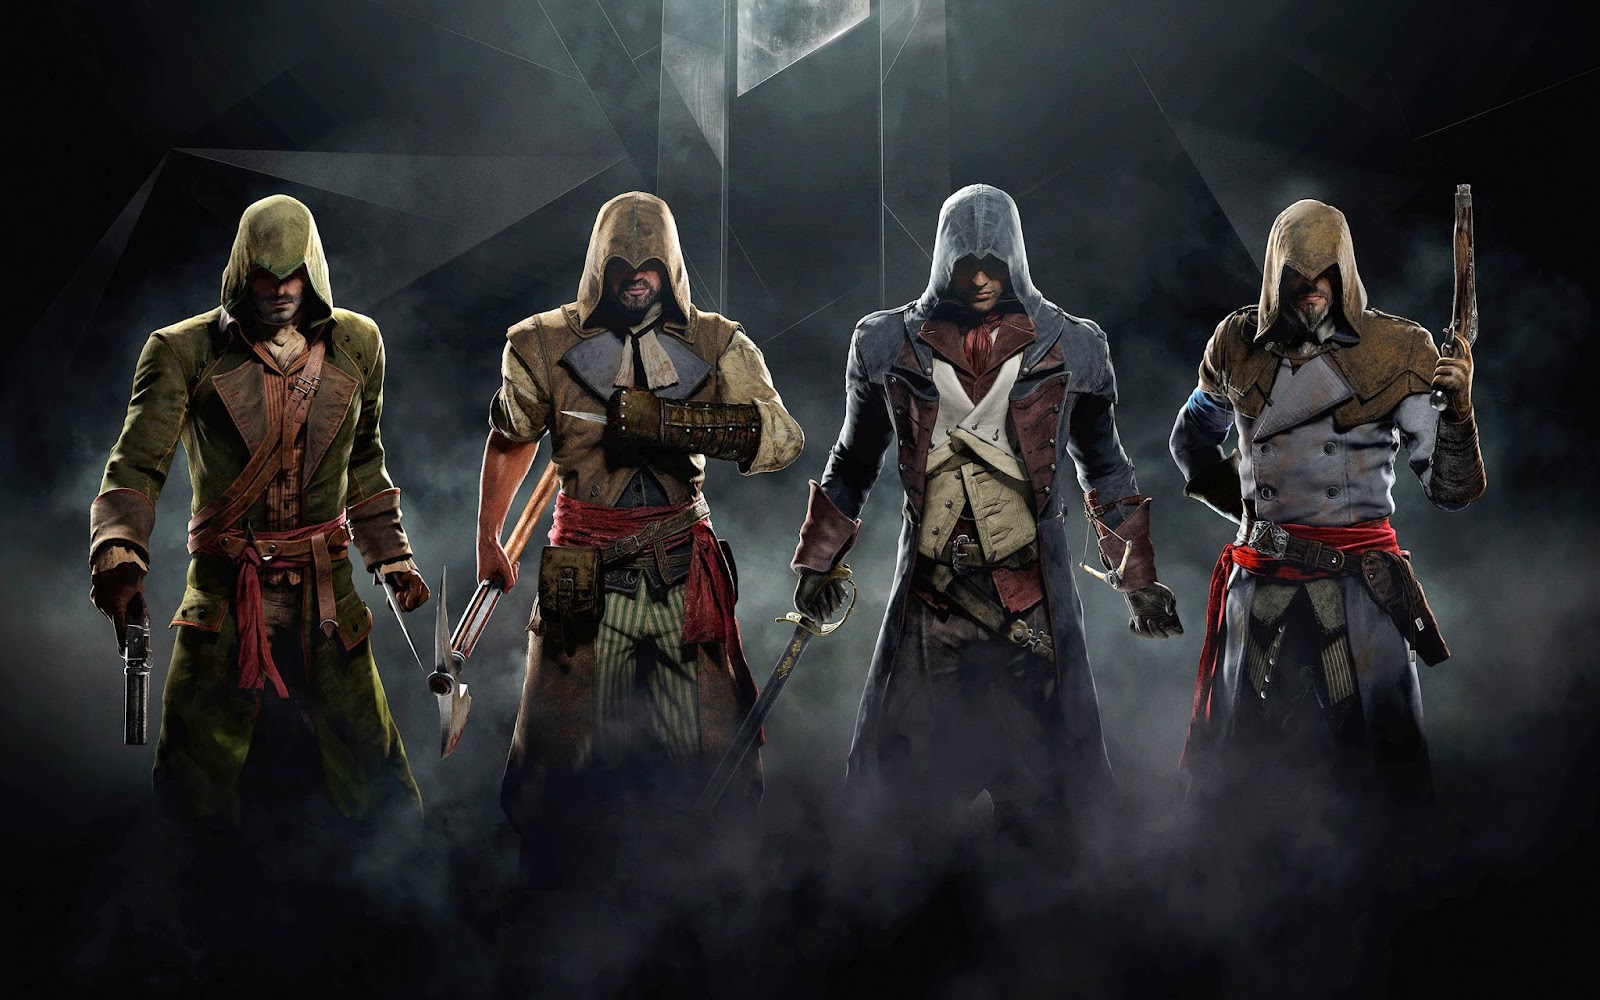 عرض لعبة Assassin's Creed Unity